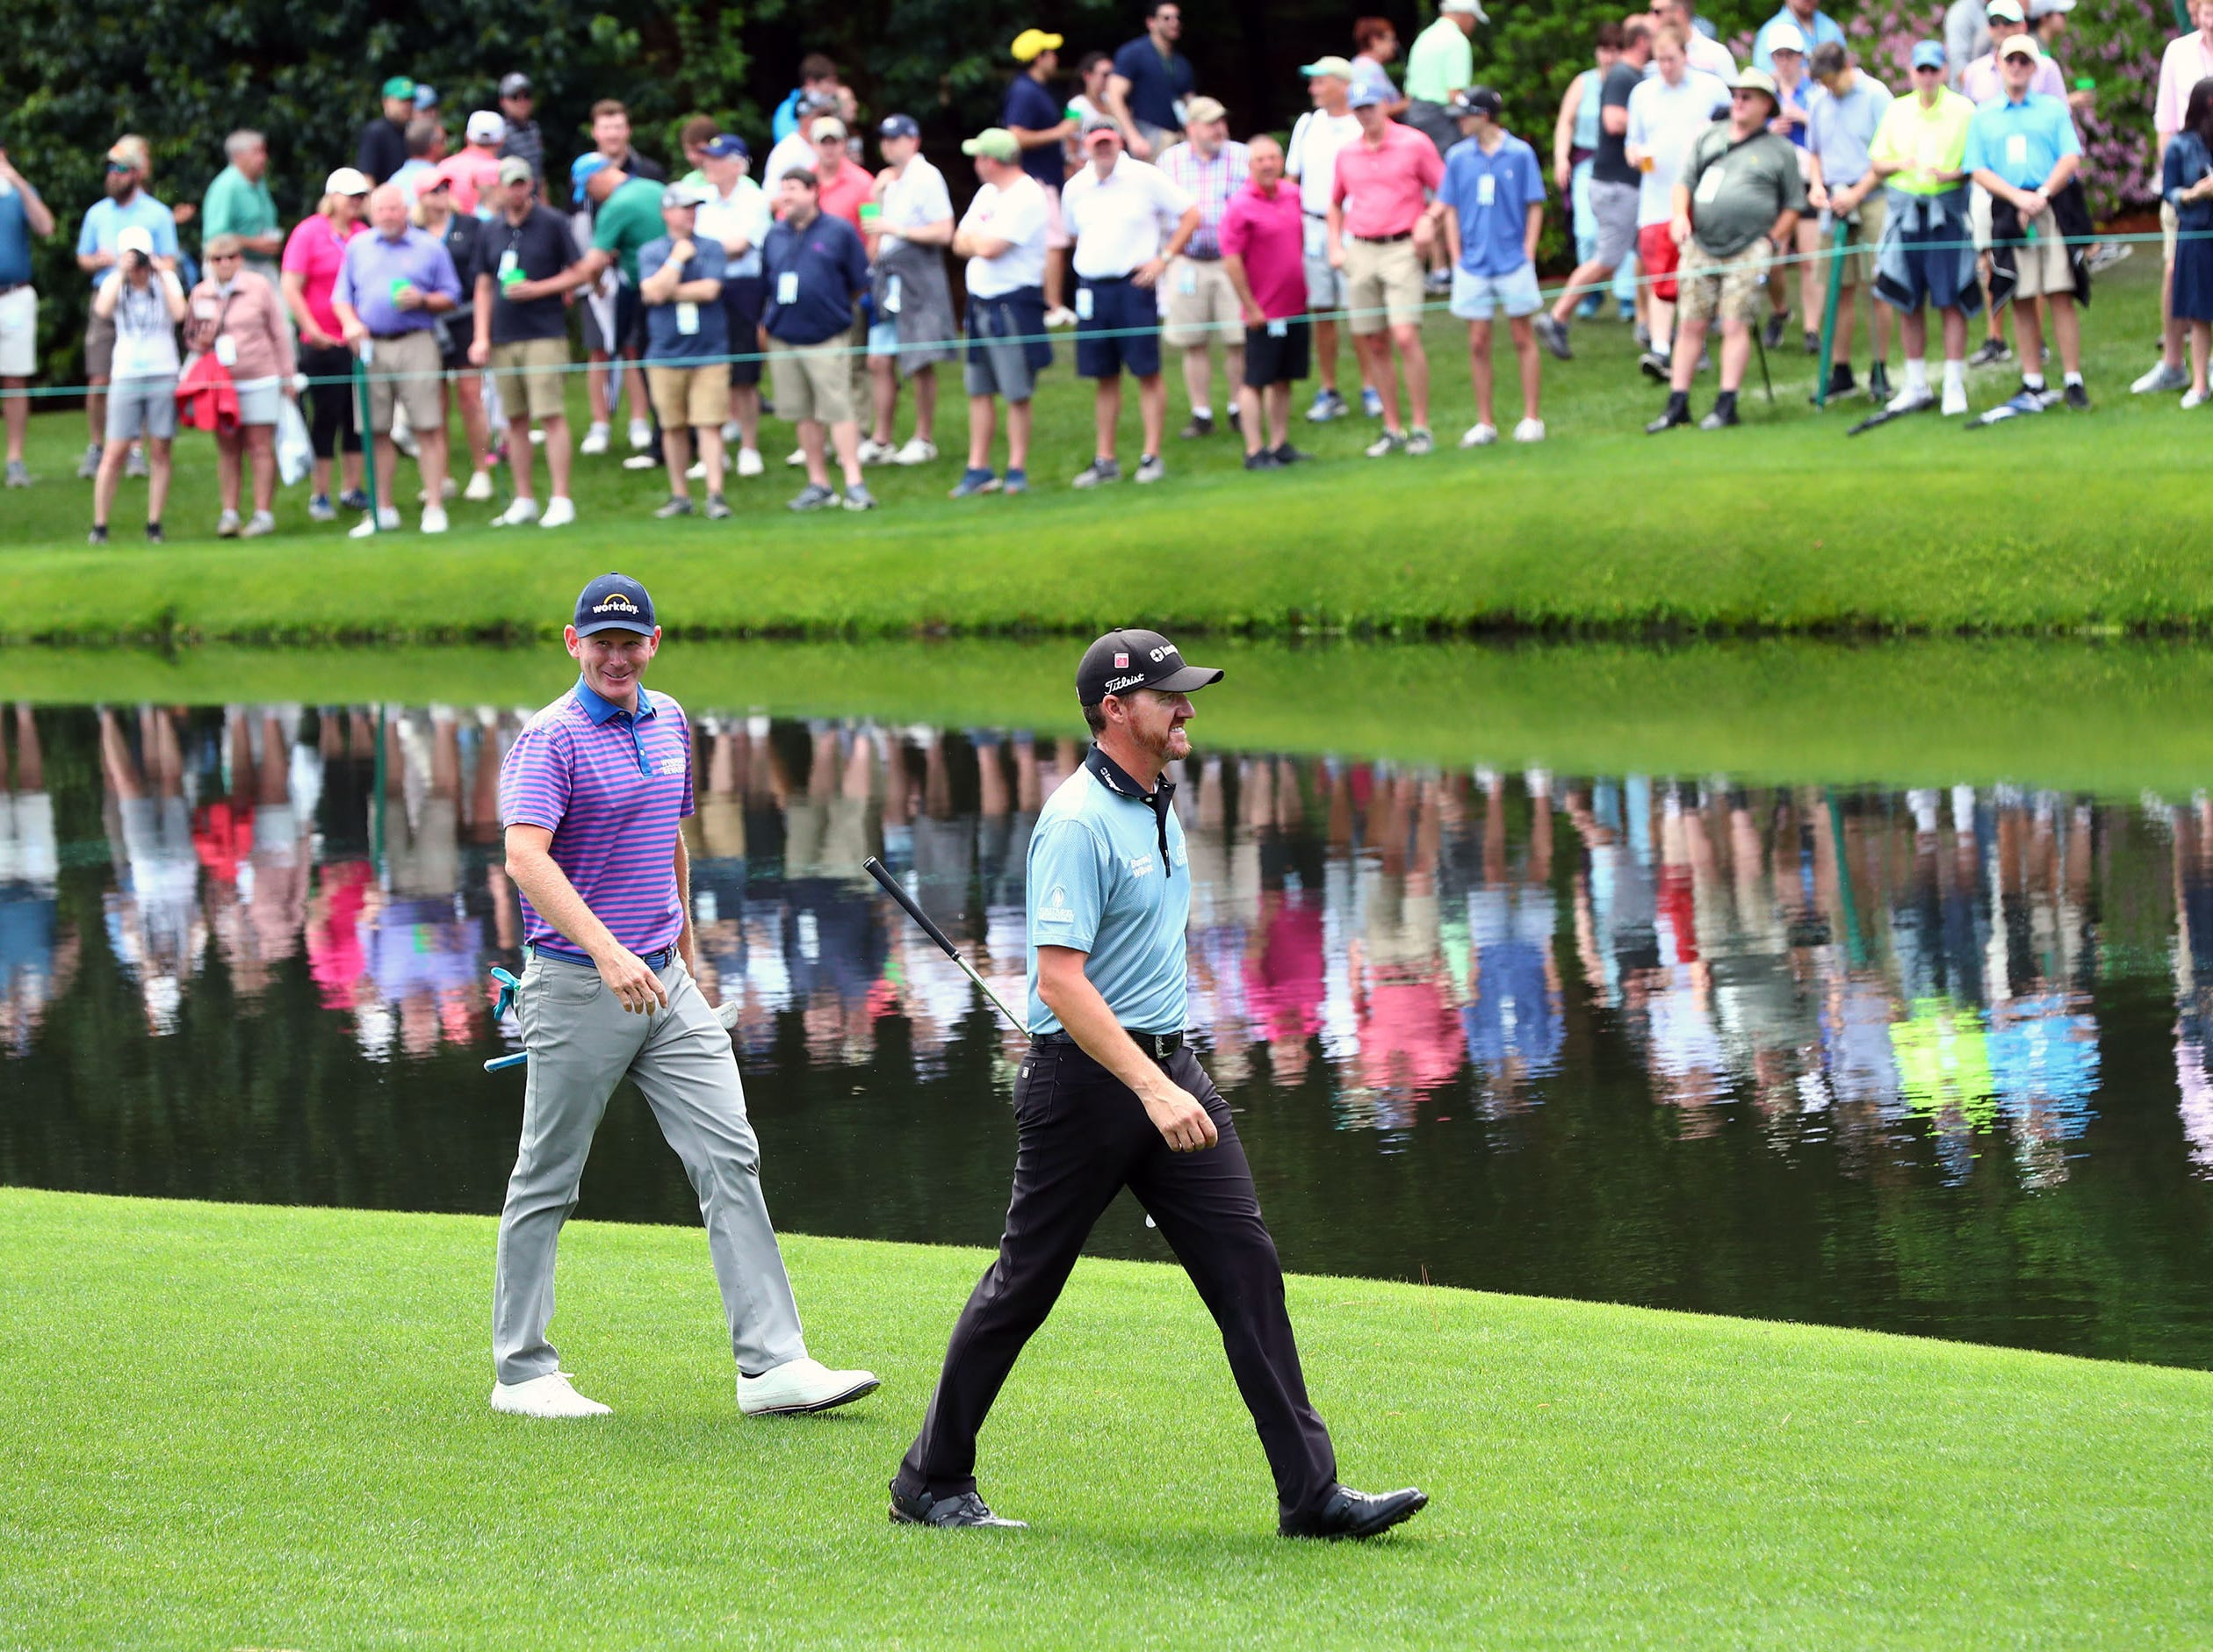 Apr 9, 2019; Augusta, GA, USA; Brandt Snedeker and Jimmy Walker walk to the green on the 16th hole during a practice round for The Masters golf tournament at Augusta National Golf Club. Mandatory Credit: Rob Schumacher-USA TODAY Sports